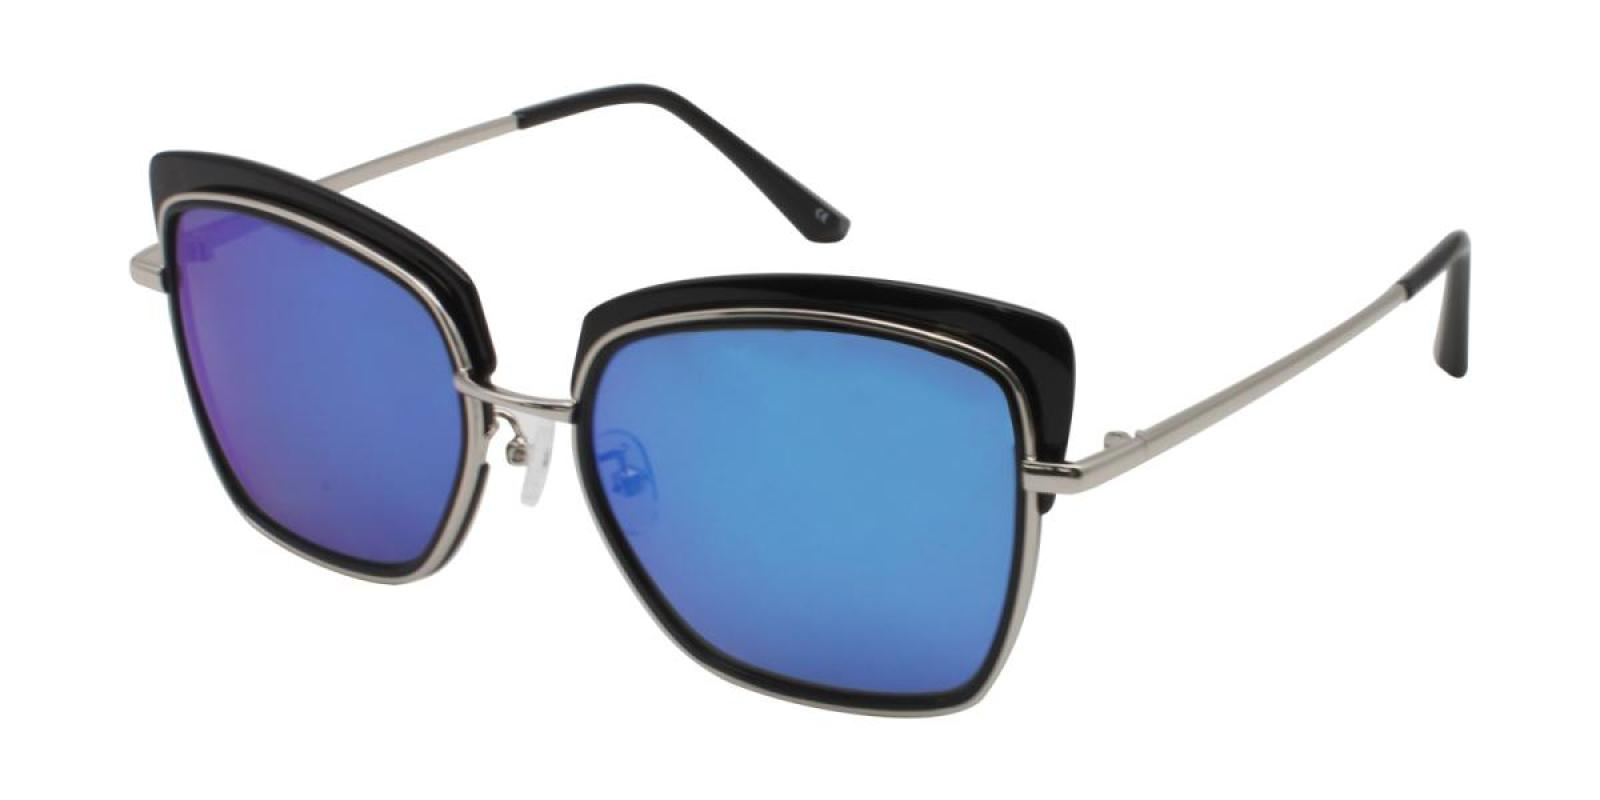 Riotousy-Black-Cat-Combination / Metal / TR-Sunglasses-additional1